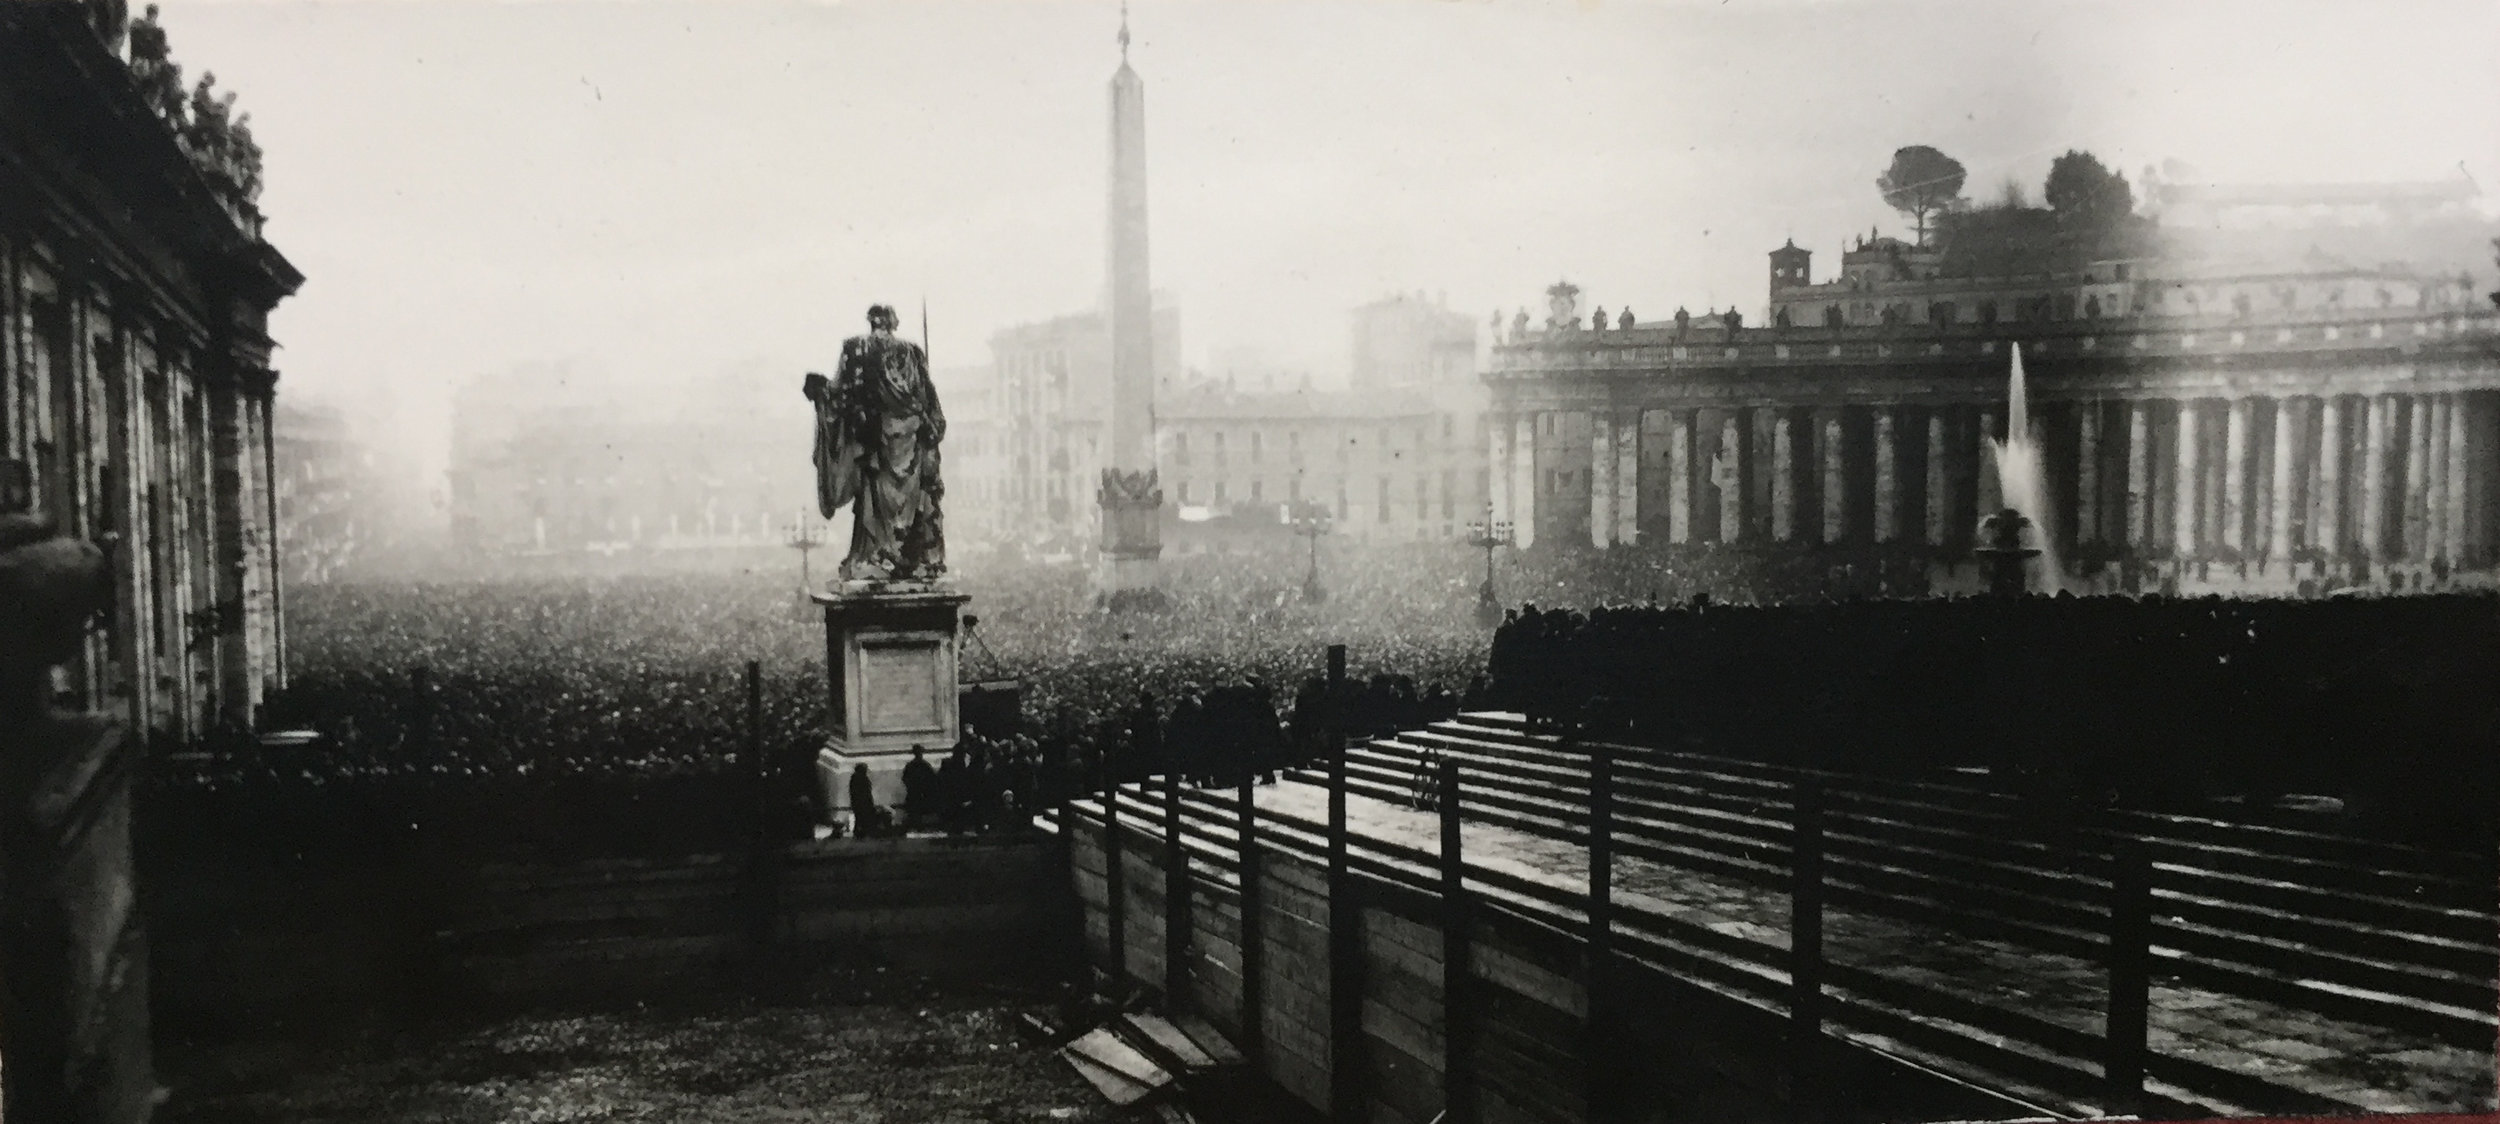 A view of St Peter's Square, Tuesday, 12 February 1929, taken by one of the students of the Venerable English College   AVCAU, Photographic collection, 1929